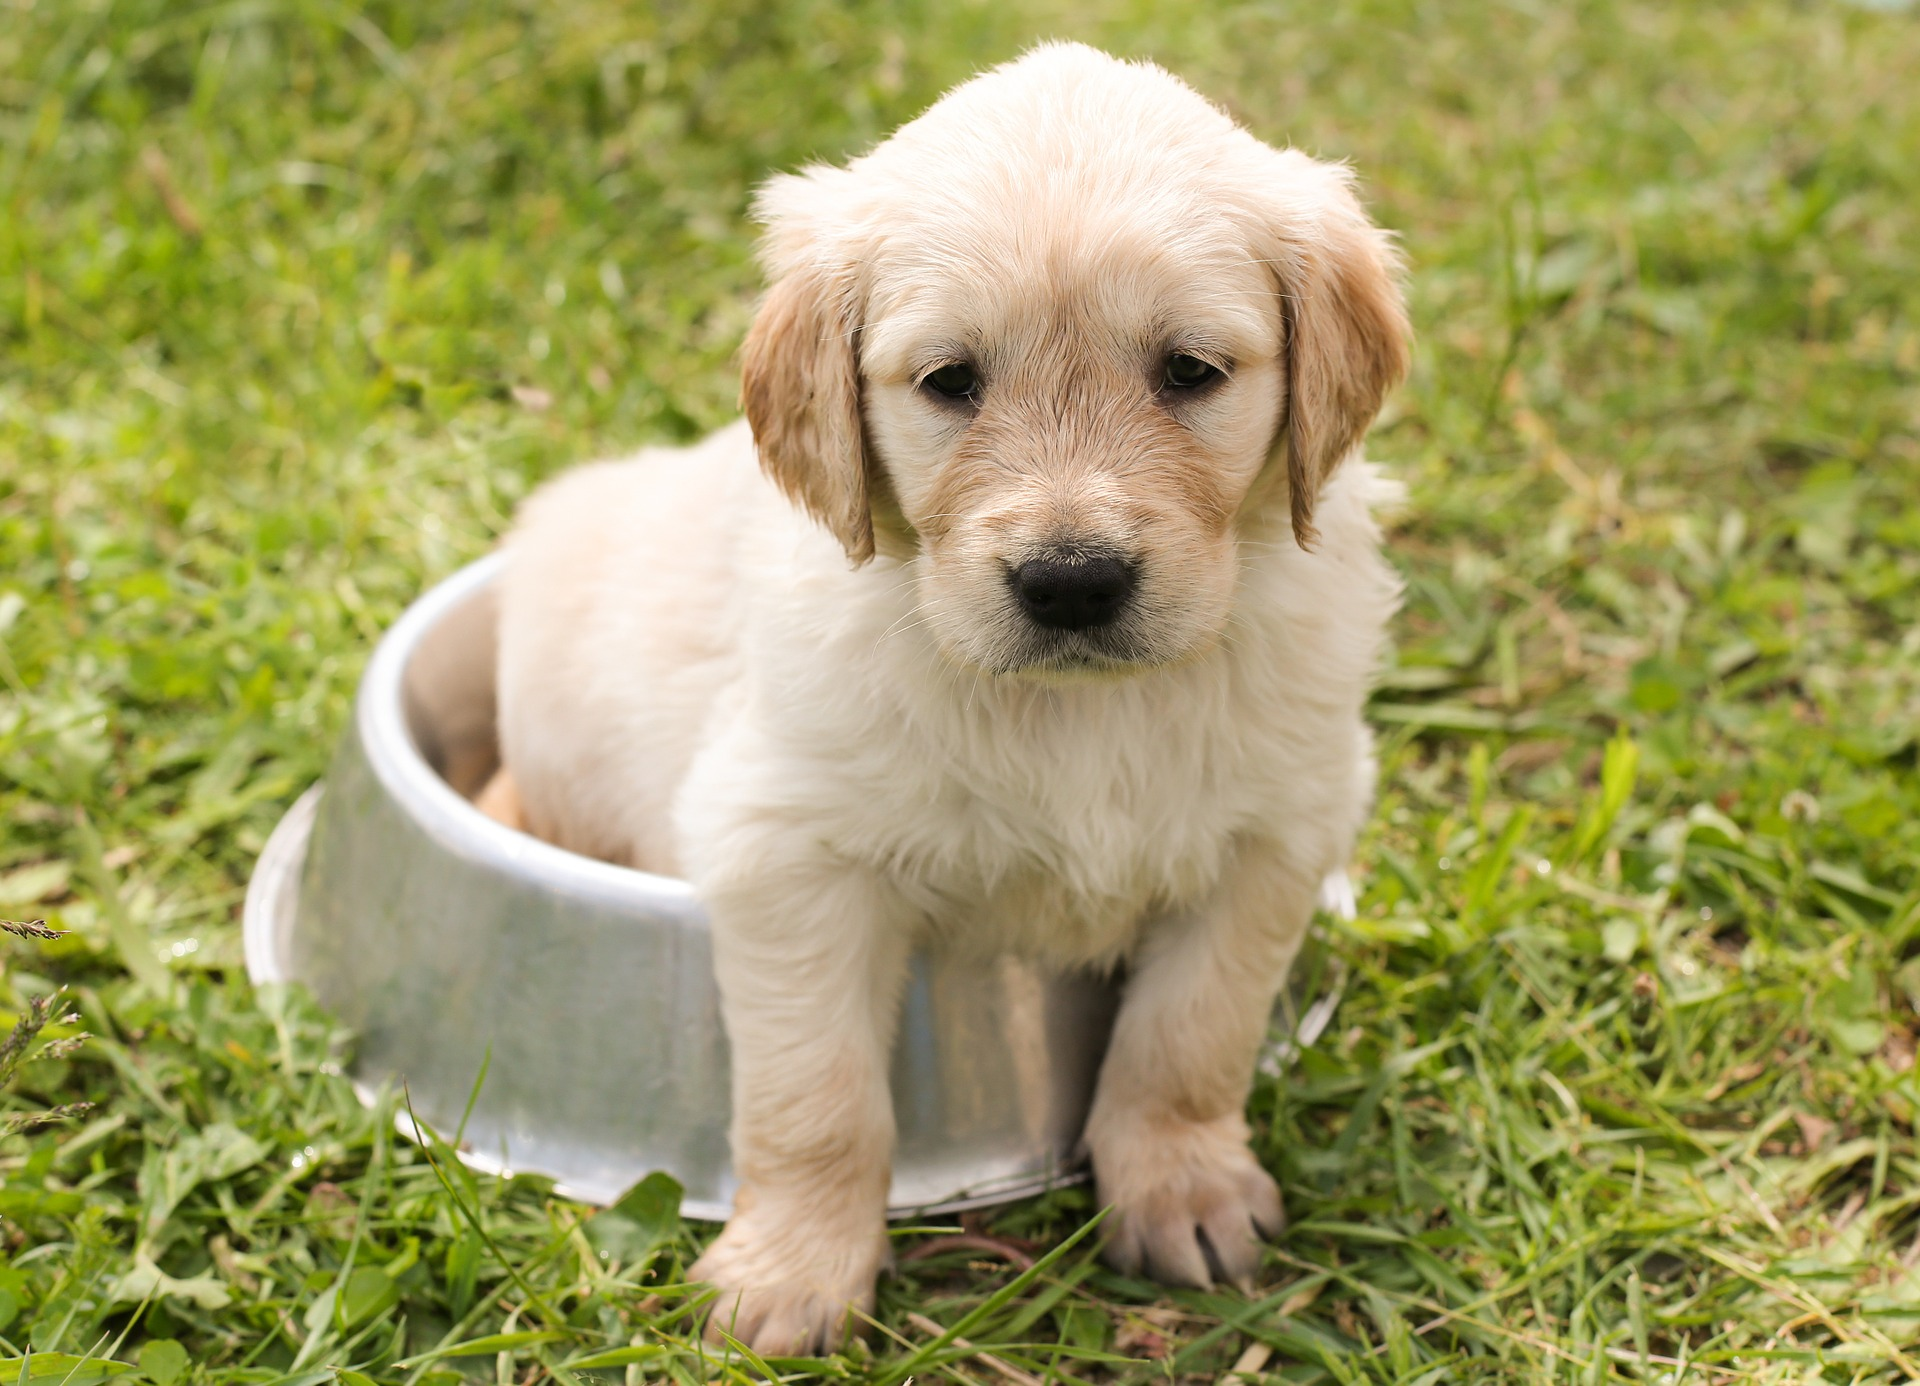 young golden retriever puppy sitting in a food bowl in the grass